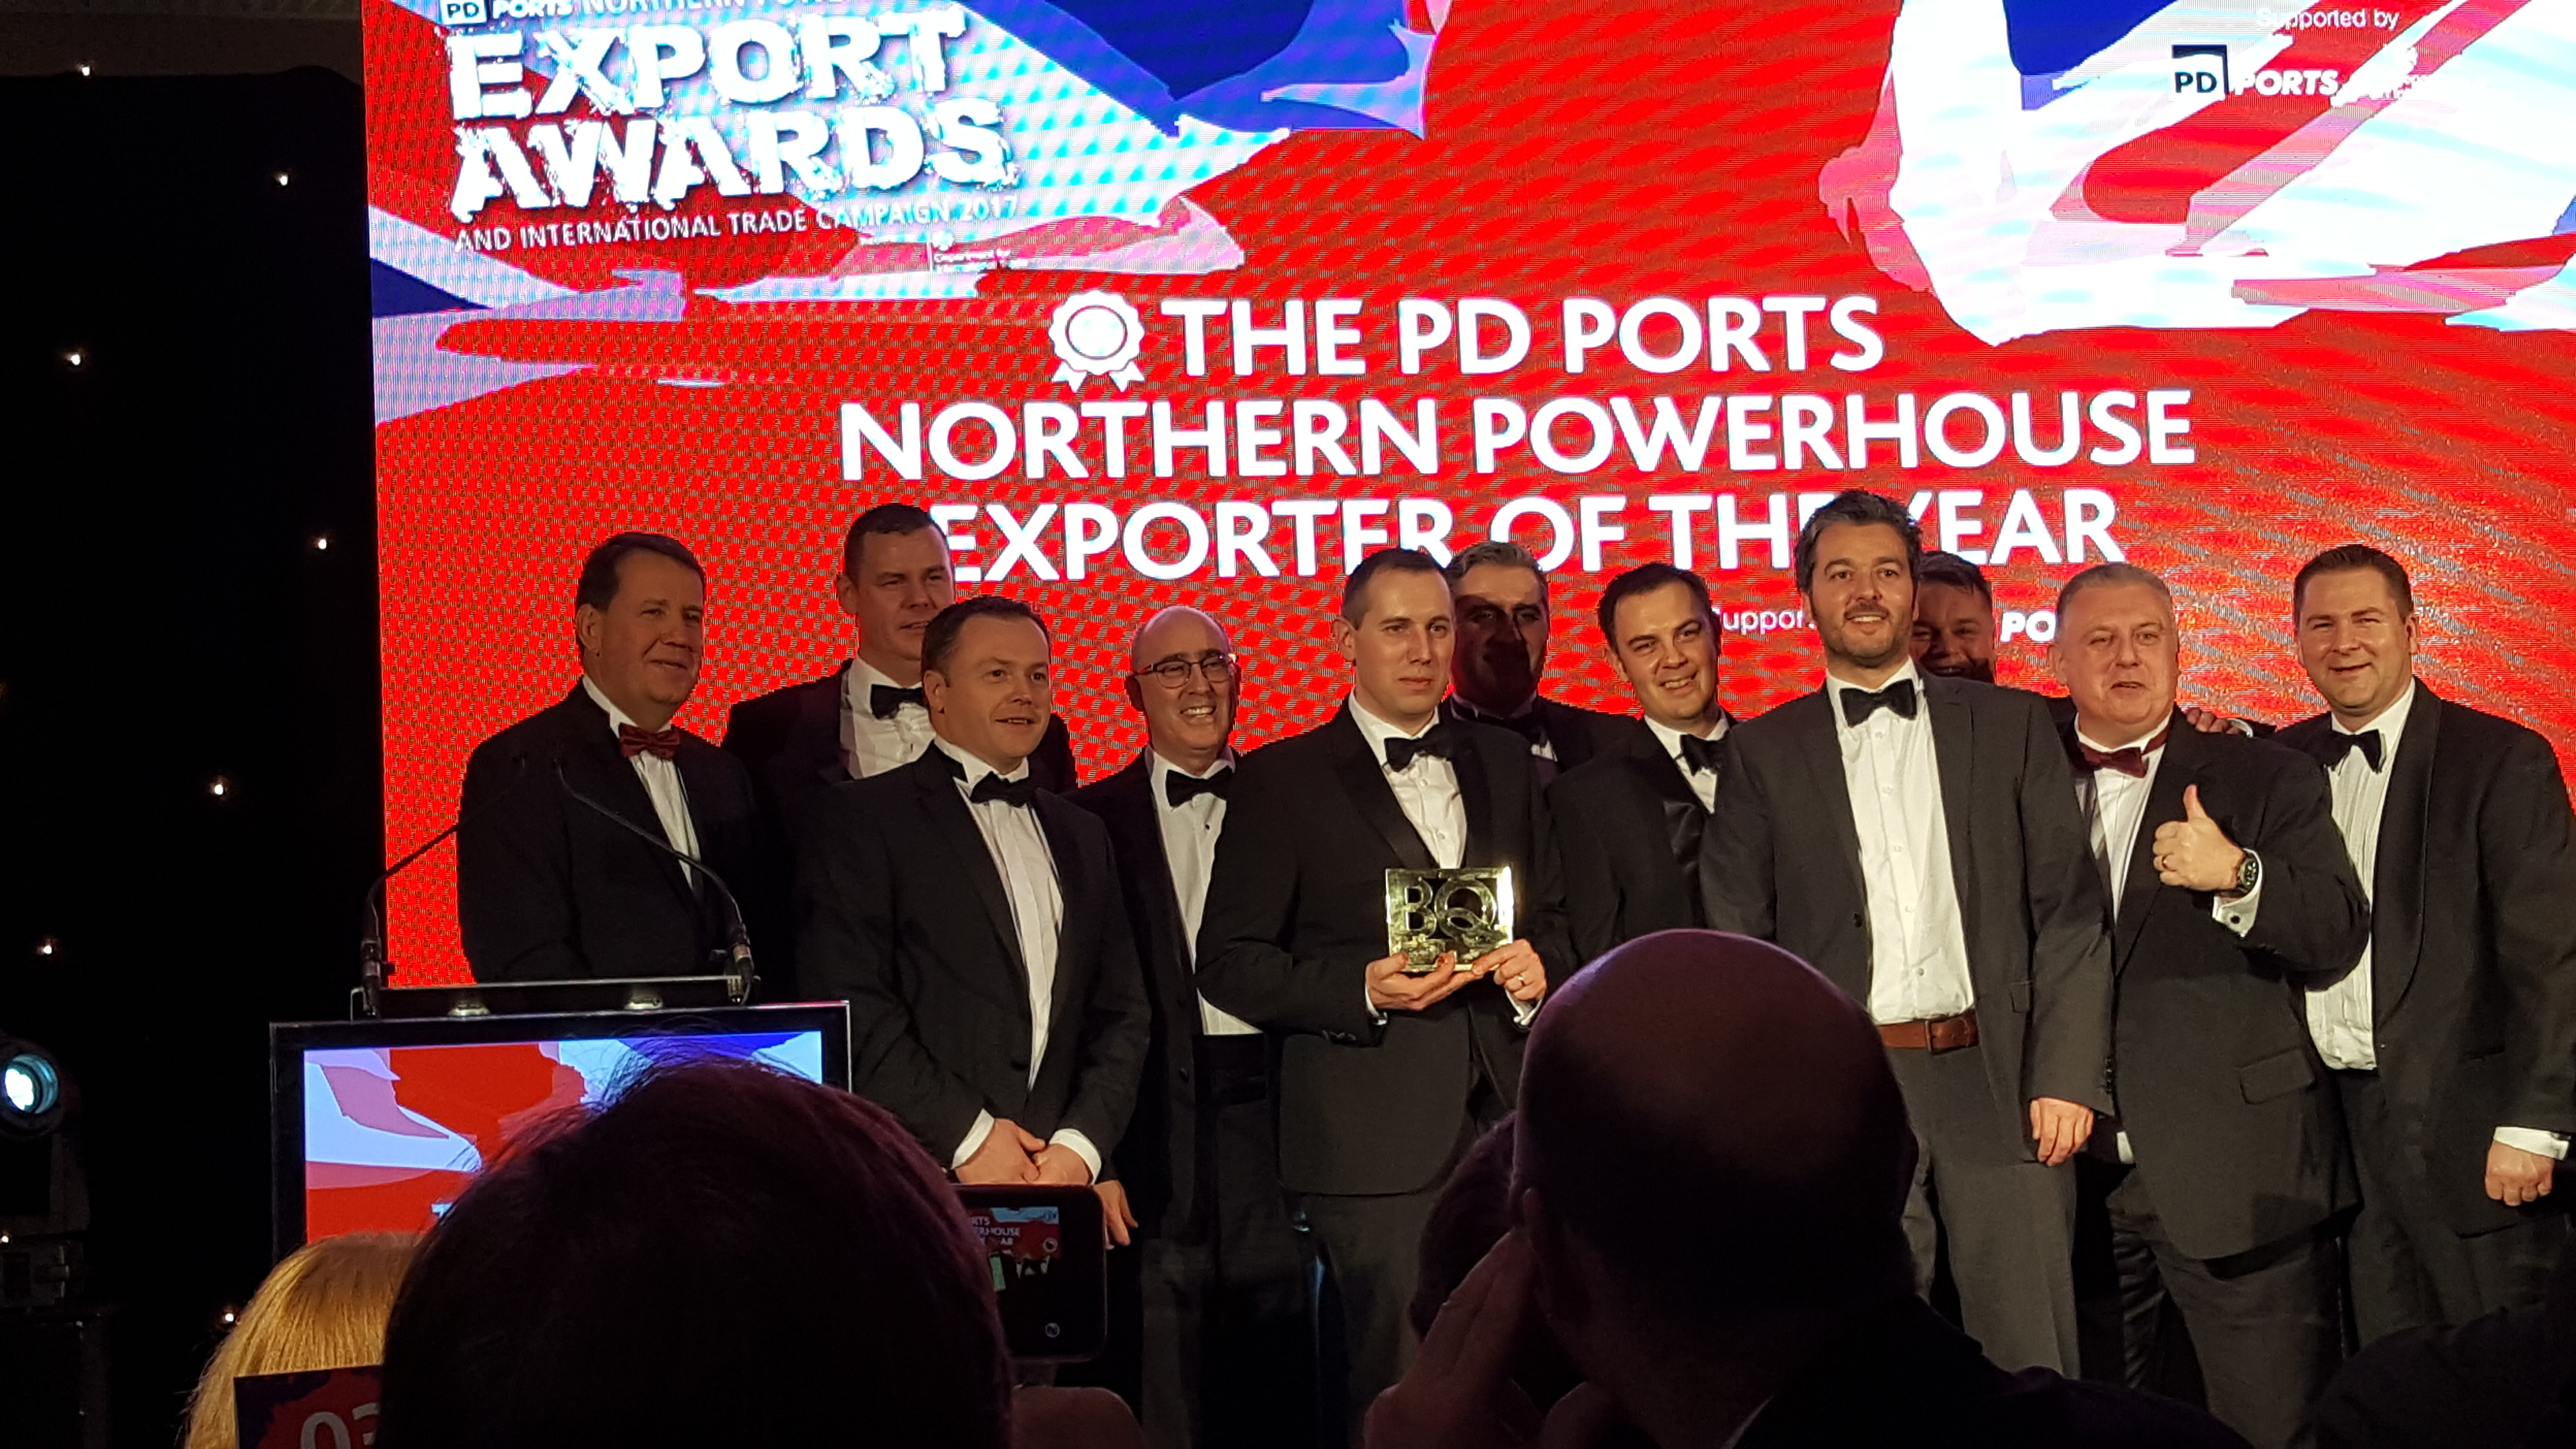 Chamber International - PD Ports Northern Powerhouse Export Awards & International Trade Campaign 2016/17